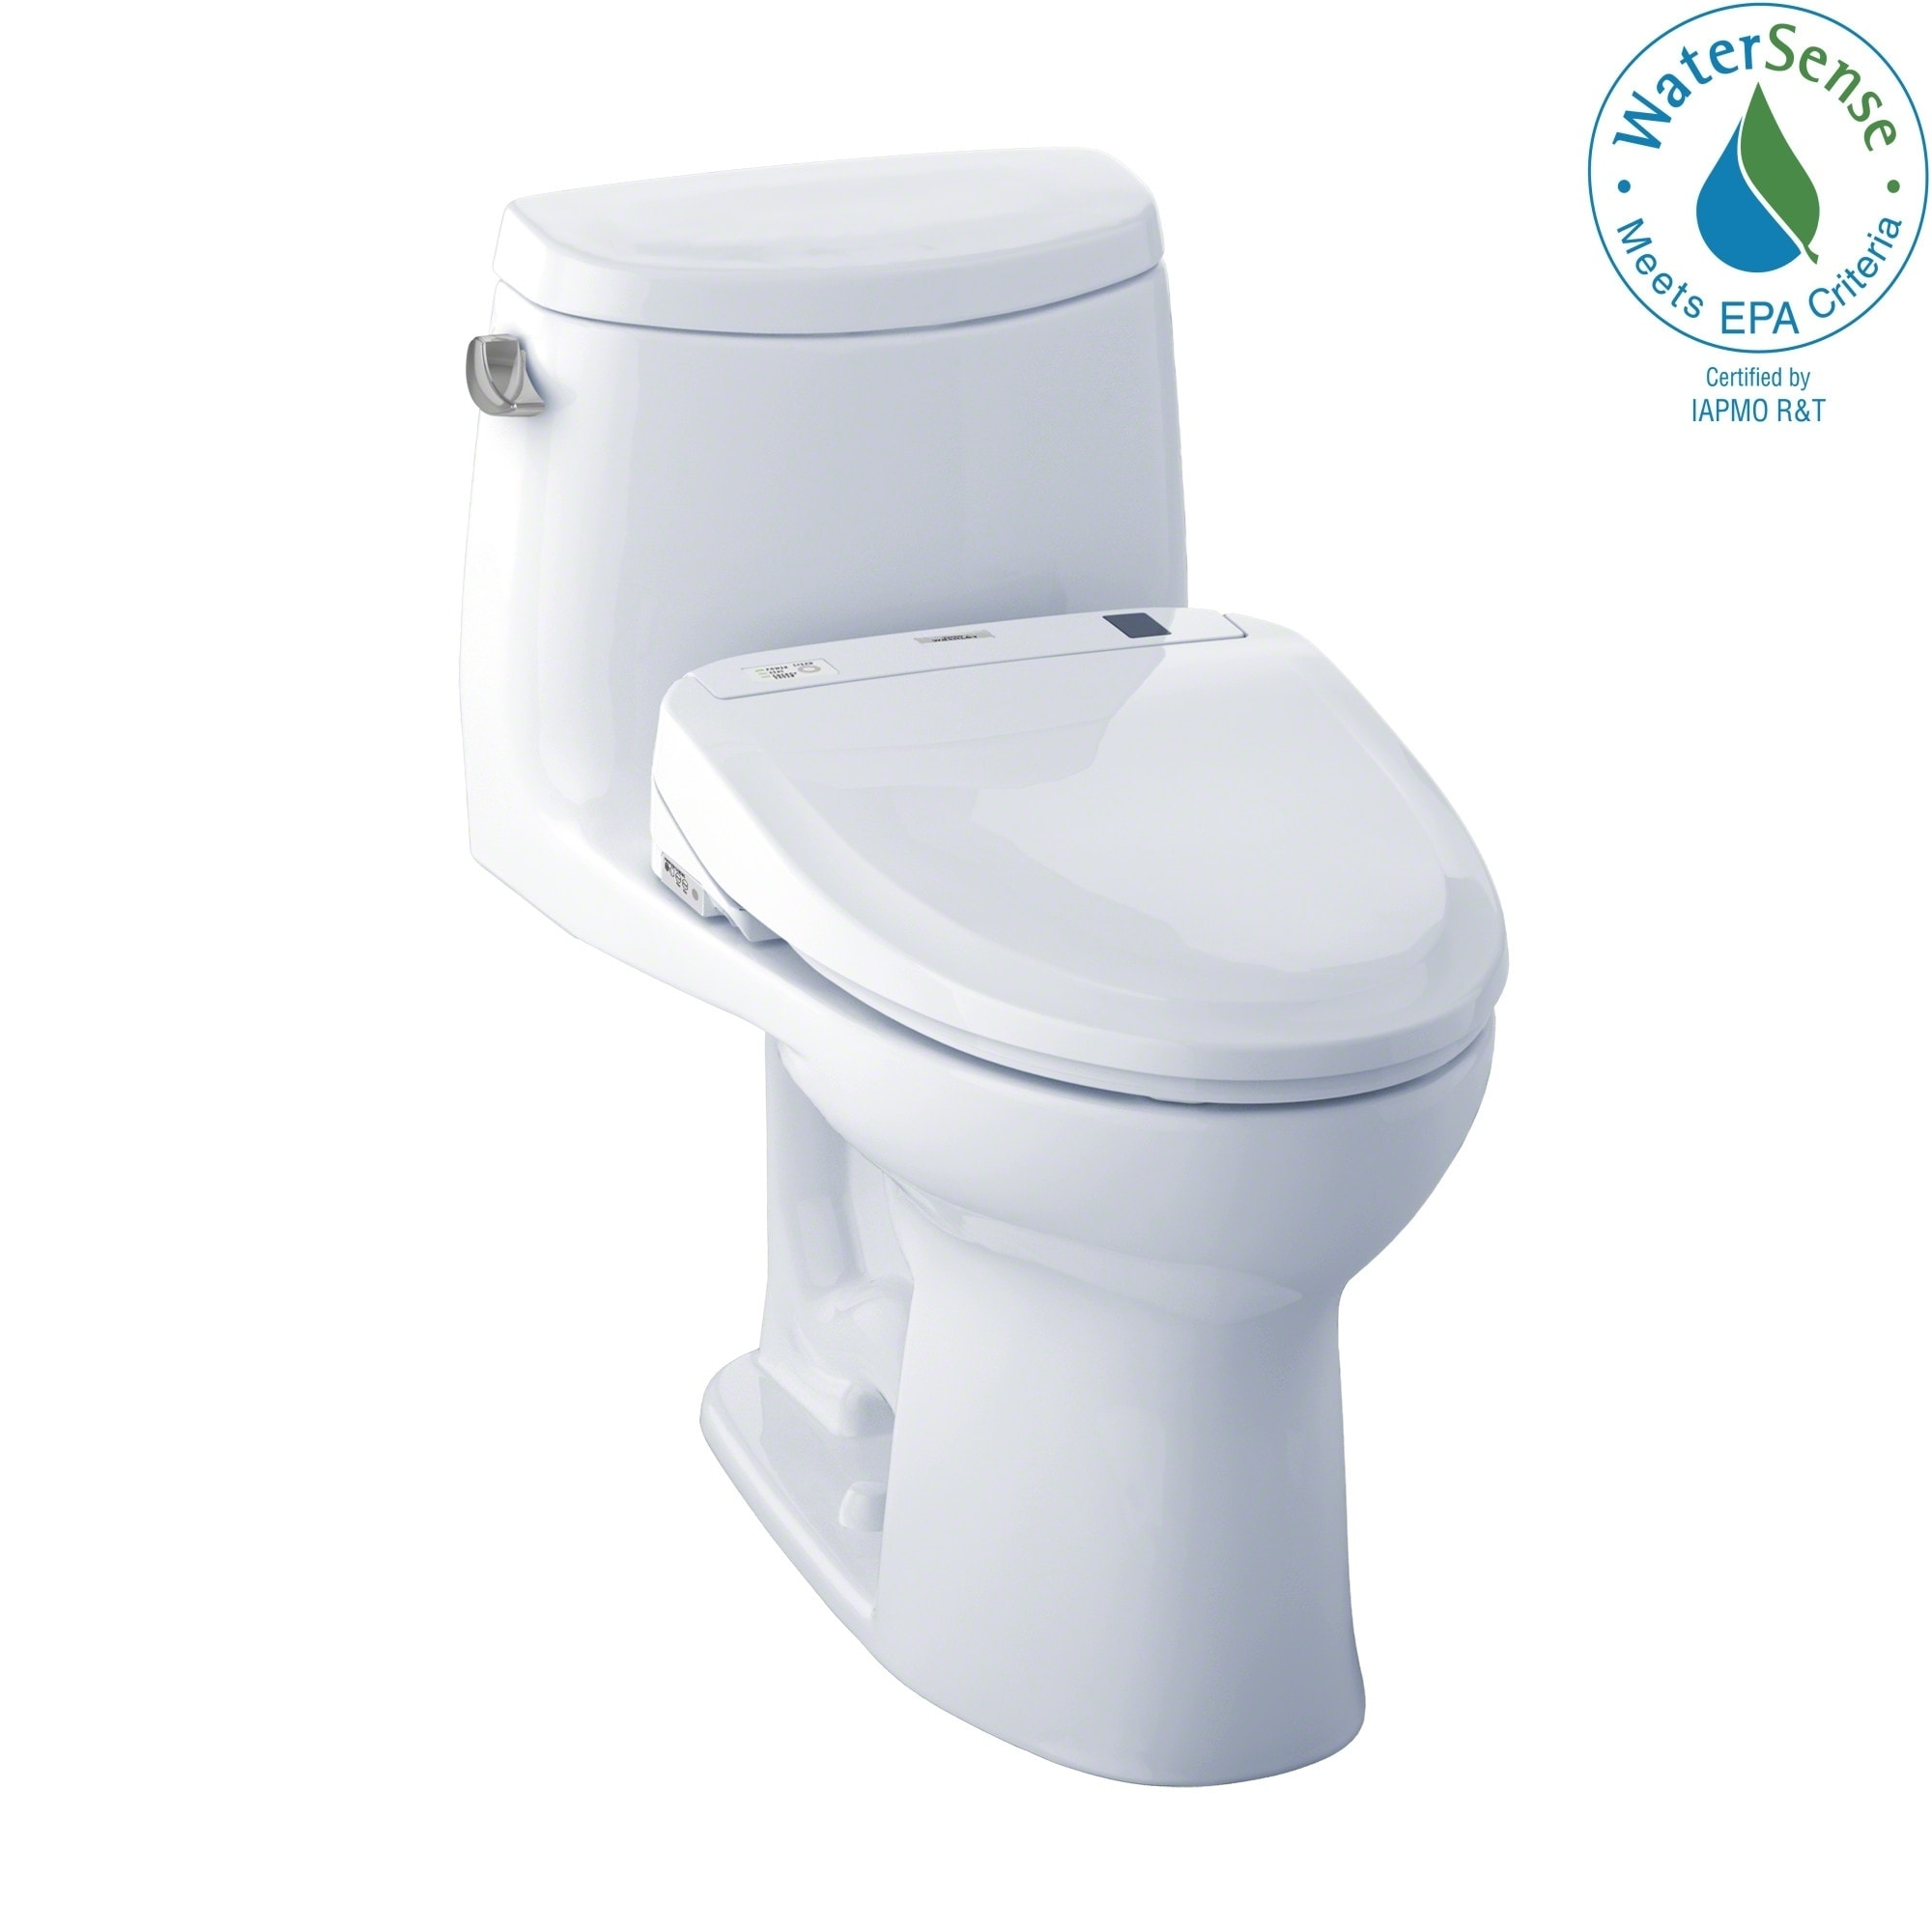 Toto Toilet Ultramax Ii S350E Cc Kit in Cotton (Cotton), ...